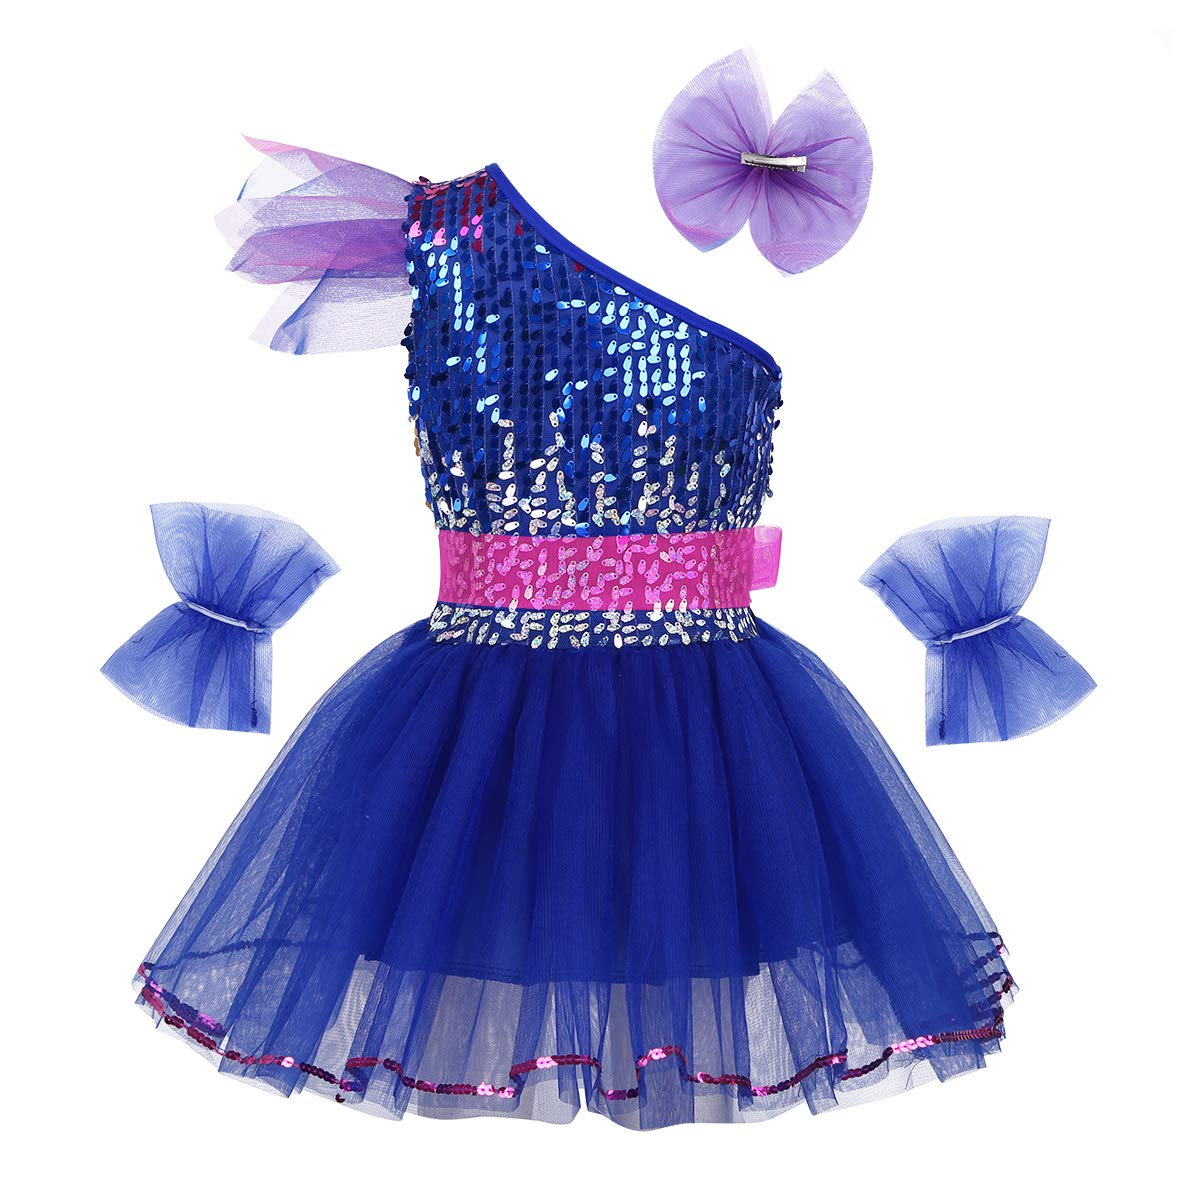 Amazon.com: Agoky Kids Girls One Shoulder Sequins Ballet ...